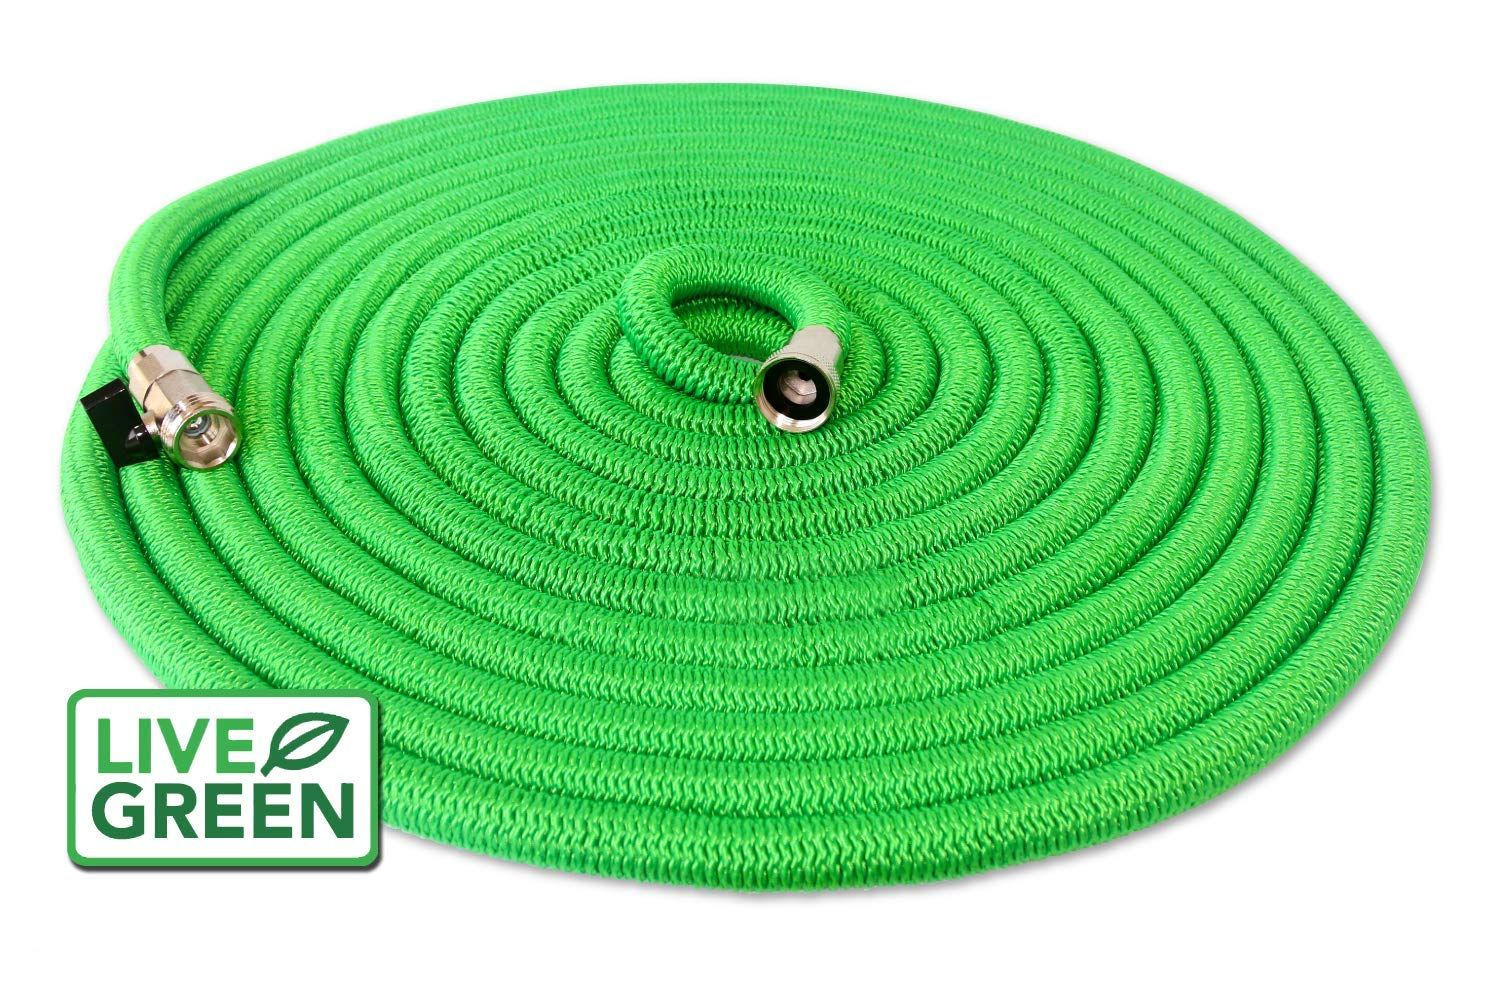 Heavy Duty 100 Ft Green Expandable Garden Hose All New Design Lifetime Warranty Nickel Plated Brass Fittings Nozzle Inc Garden Hose Hose Brass Fittings